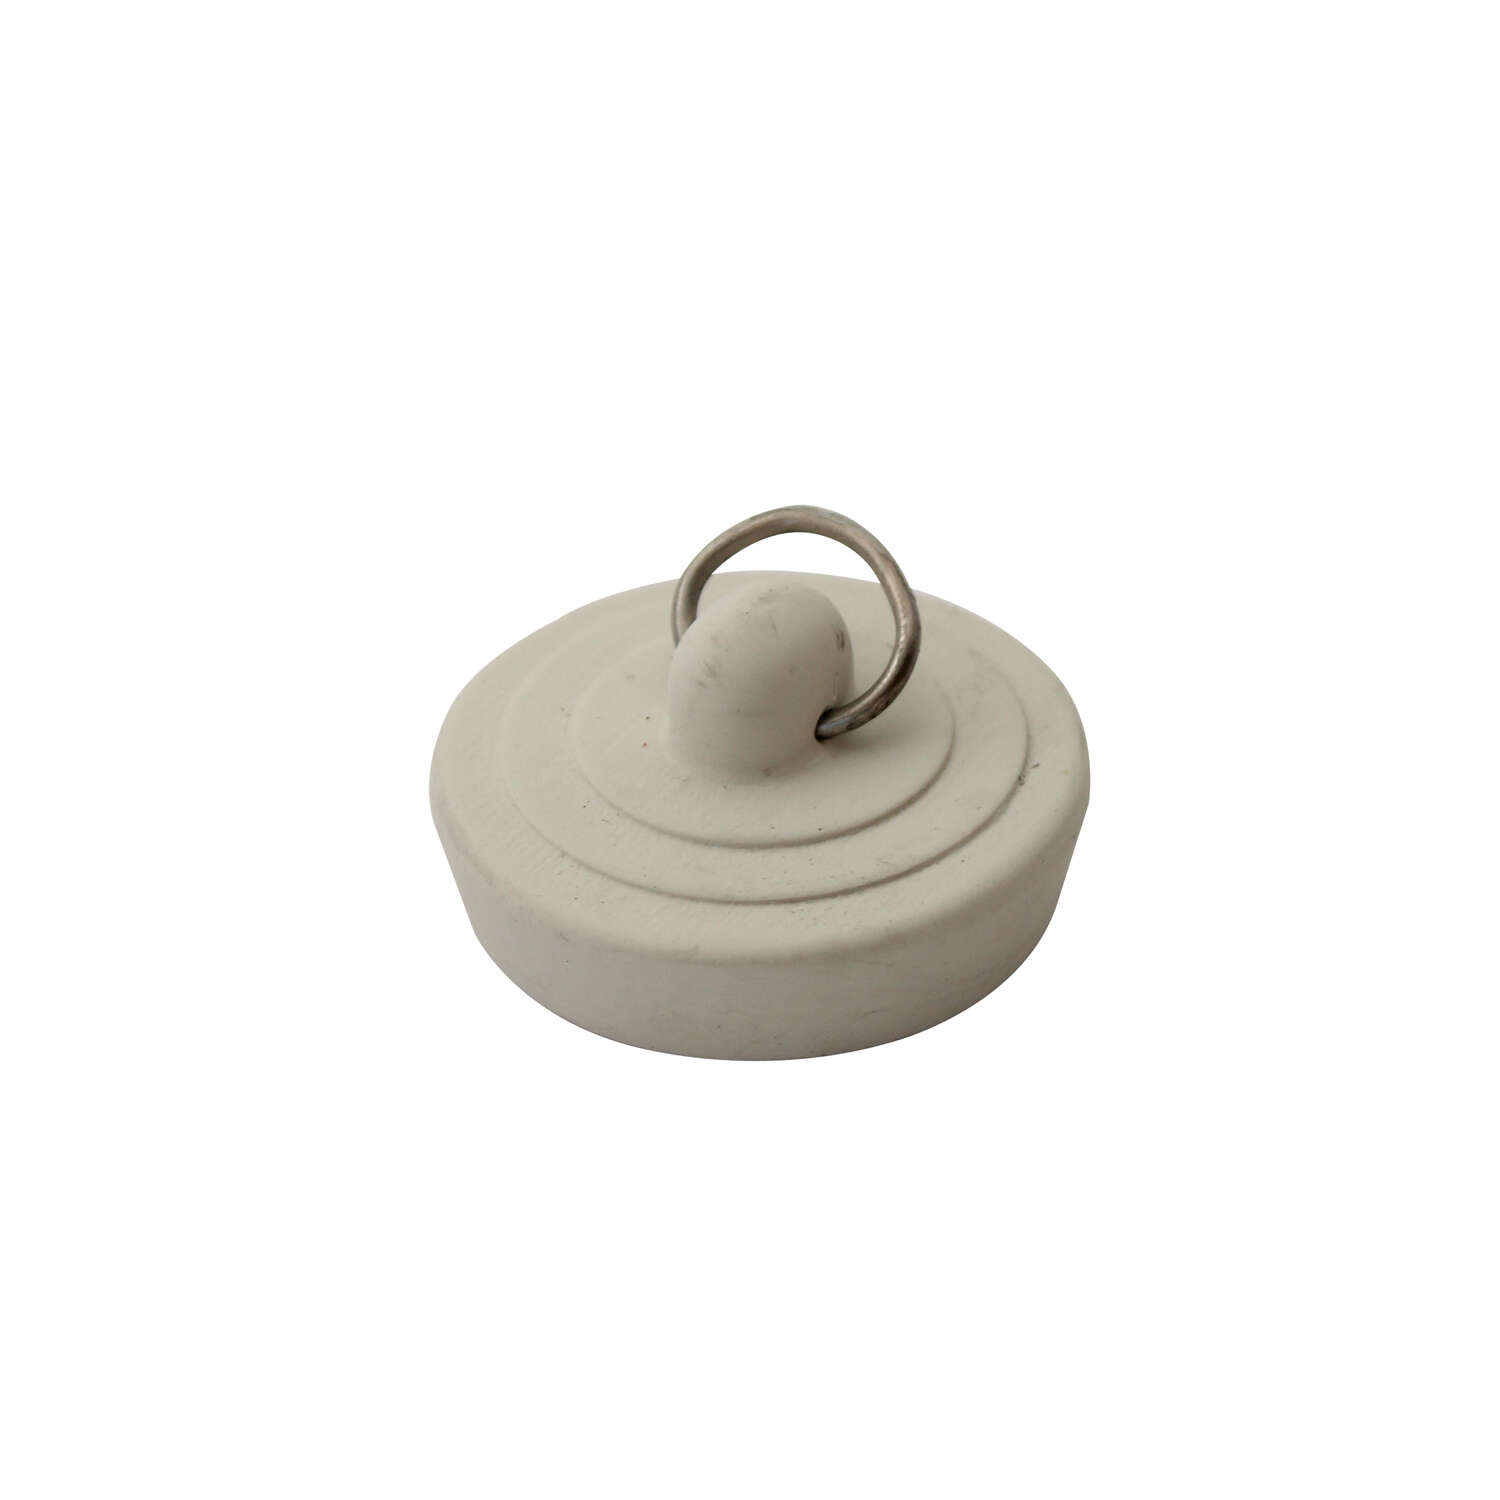 Ace  1-3/8 in. Dia. Sink Stopper  Rubber  Nickel Plated